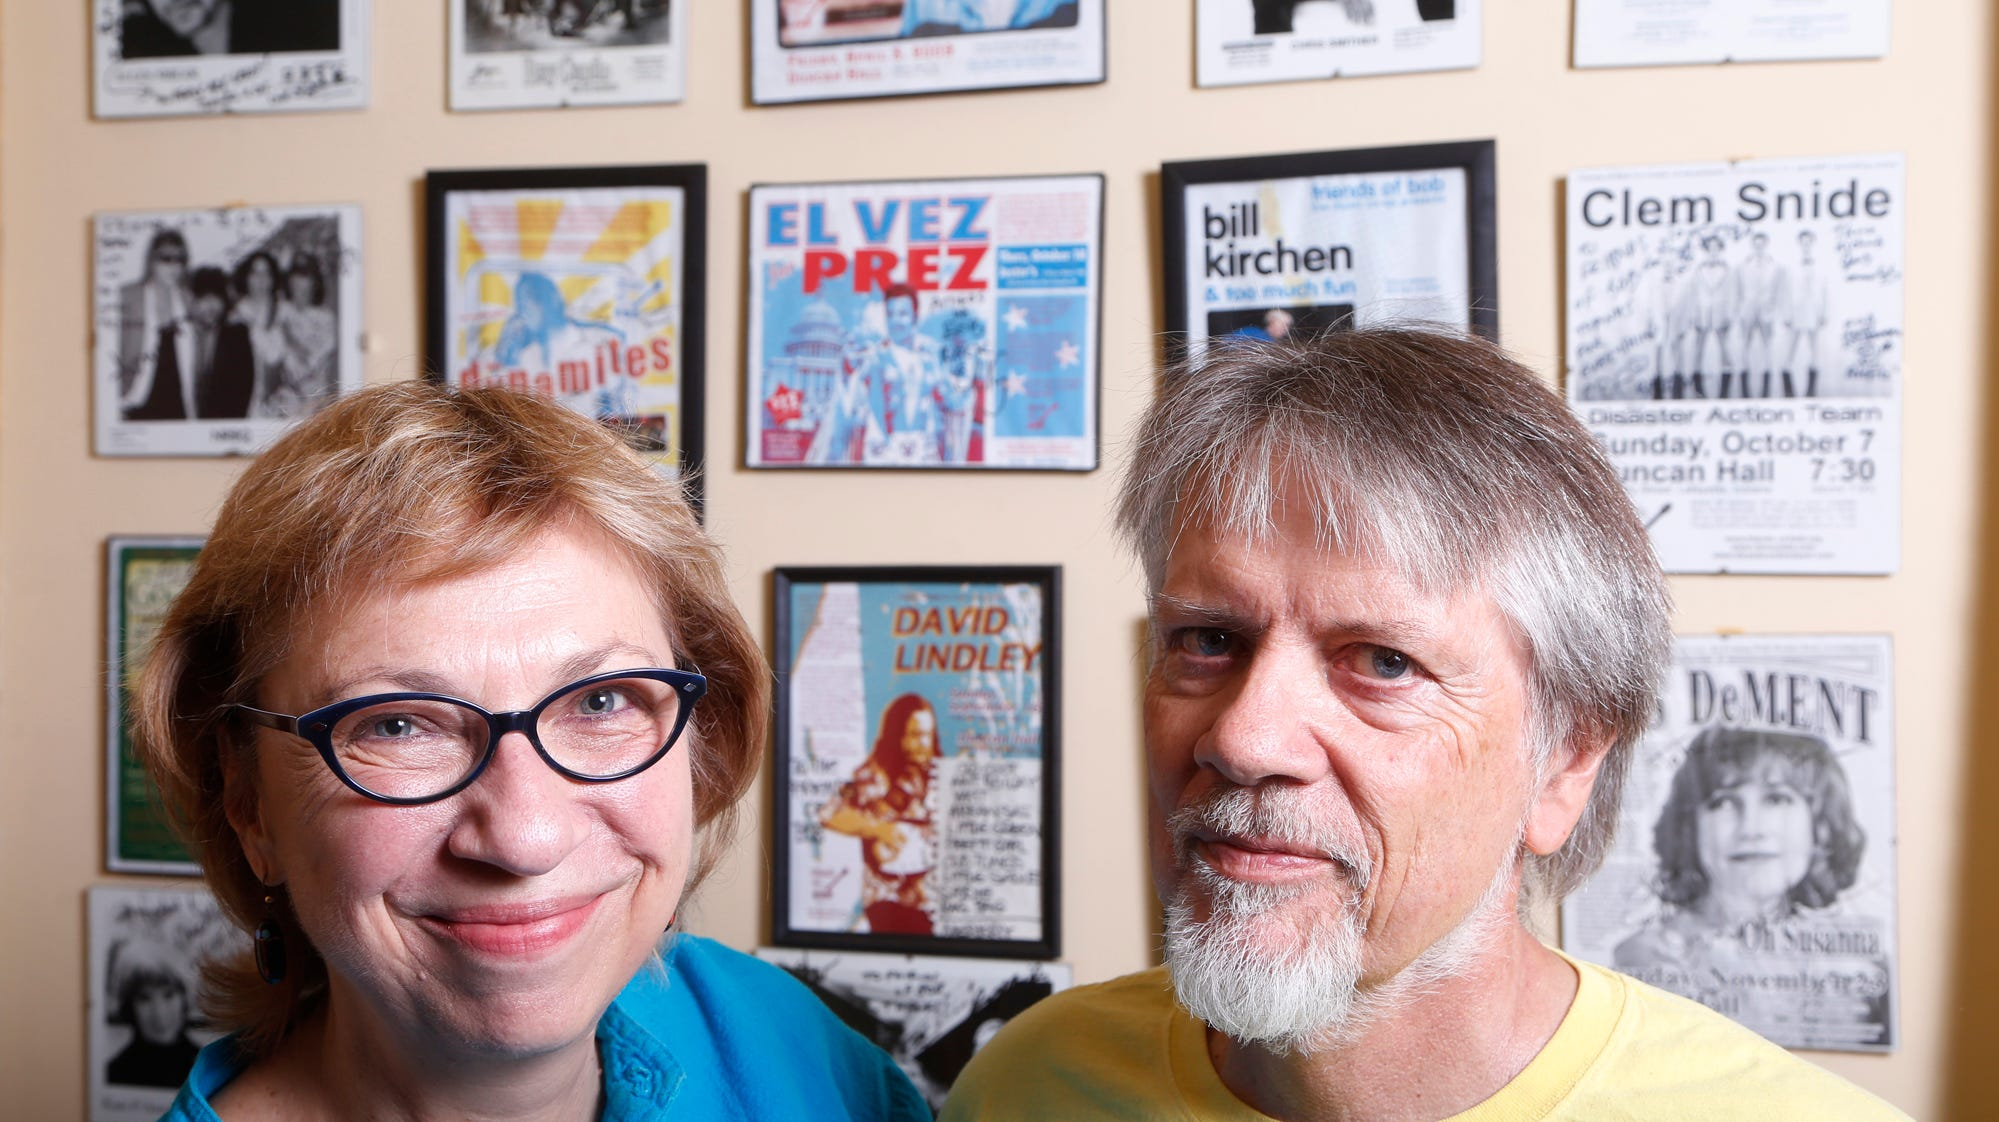 Richard Fudge and Meredith Richmond stand next to a wall decorated with promotional photos from musicians featured in Friends of Bob shows Wednesday, October 24, 2018, in their Battle Ground home. The popular Friends of Bob performances will come to an end after 25 years and 187 memorable shows.